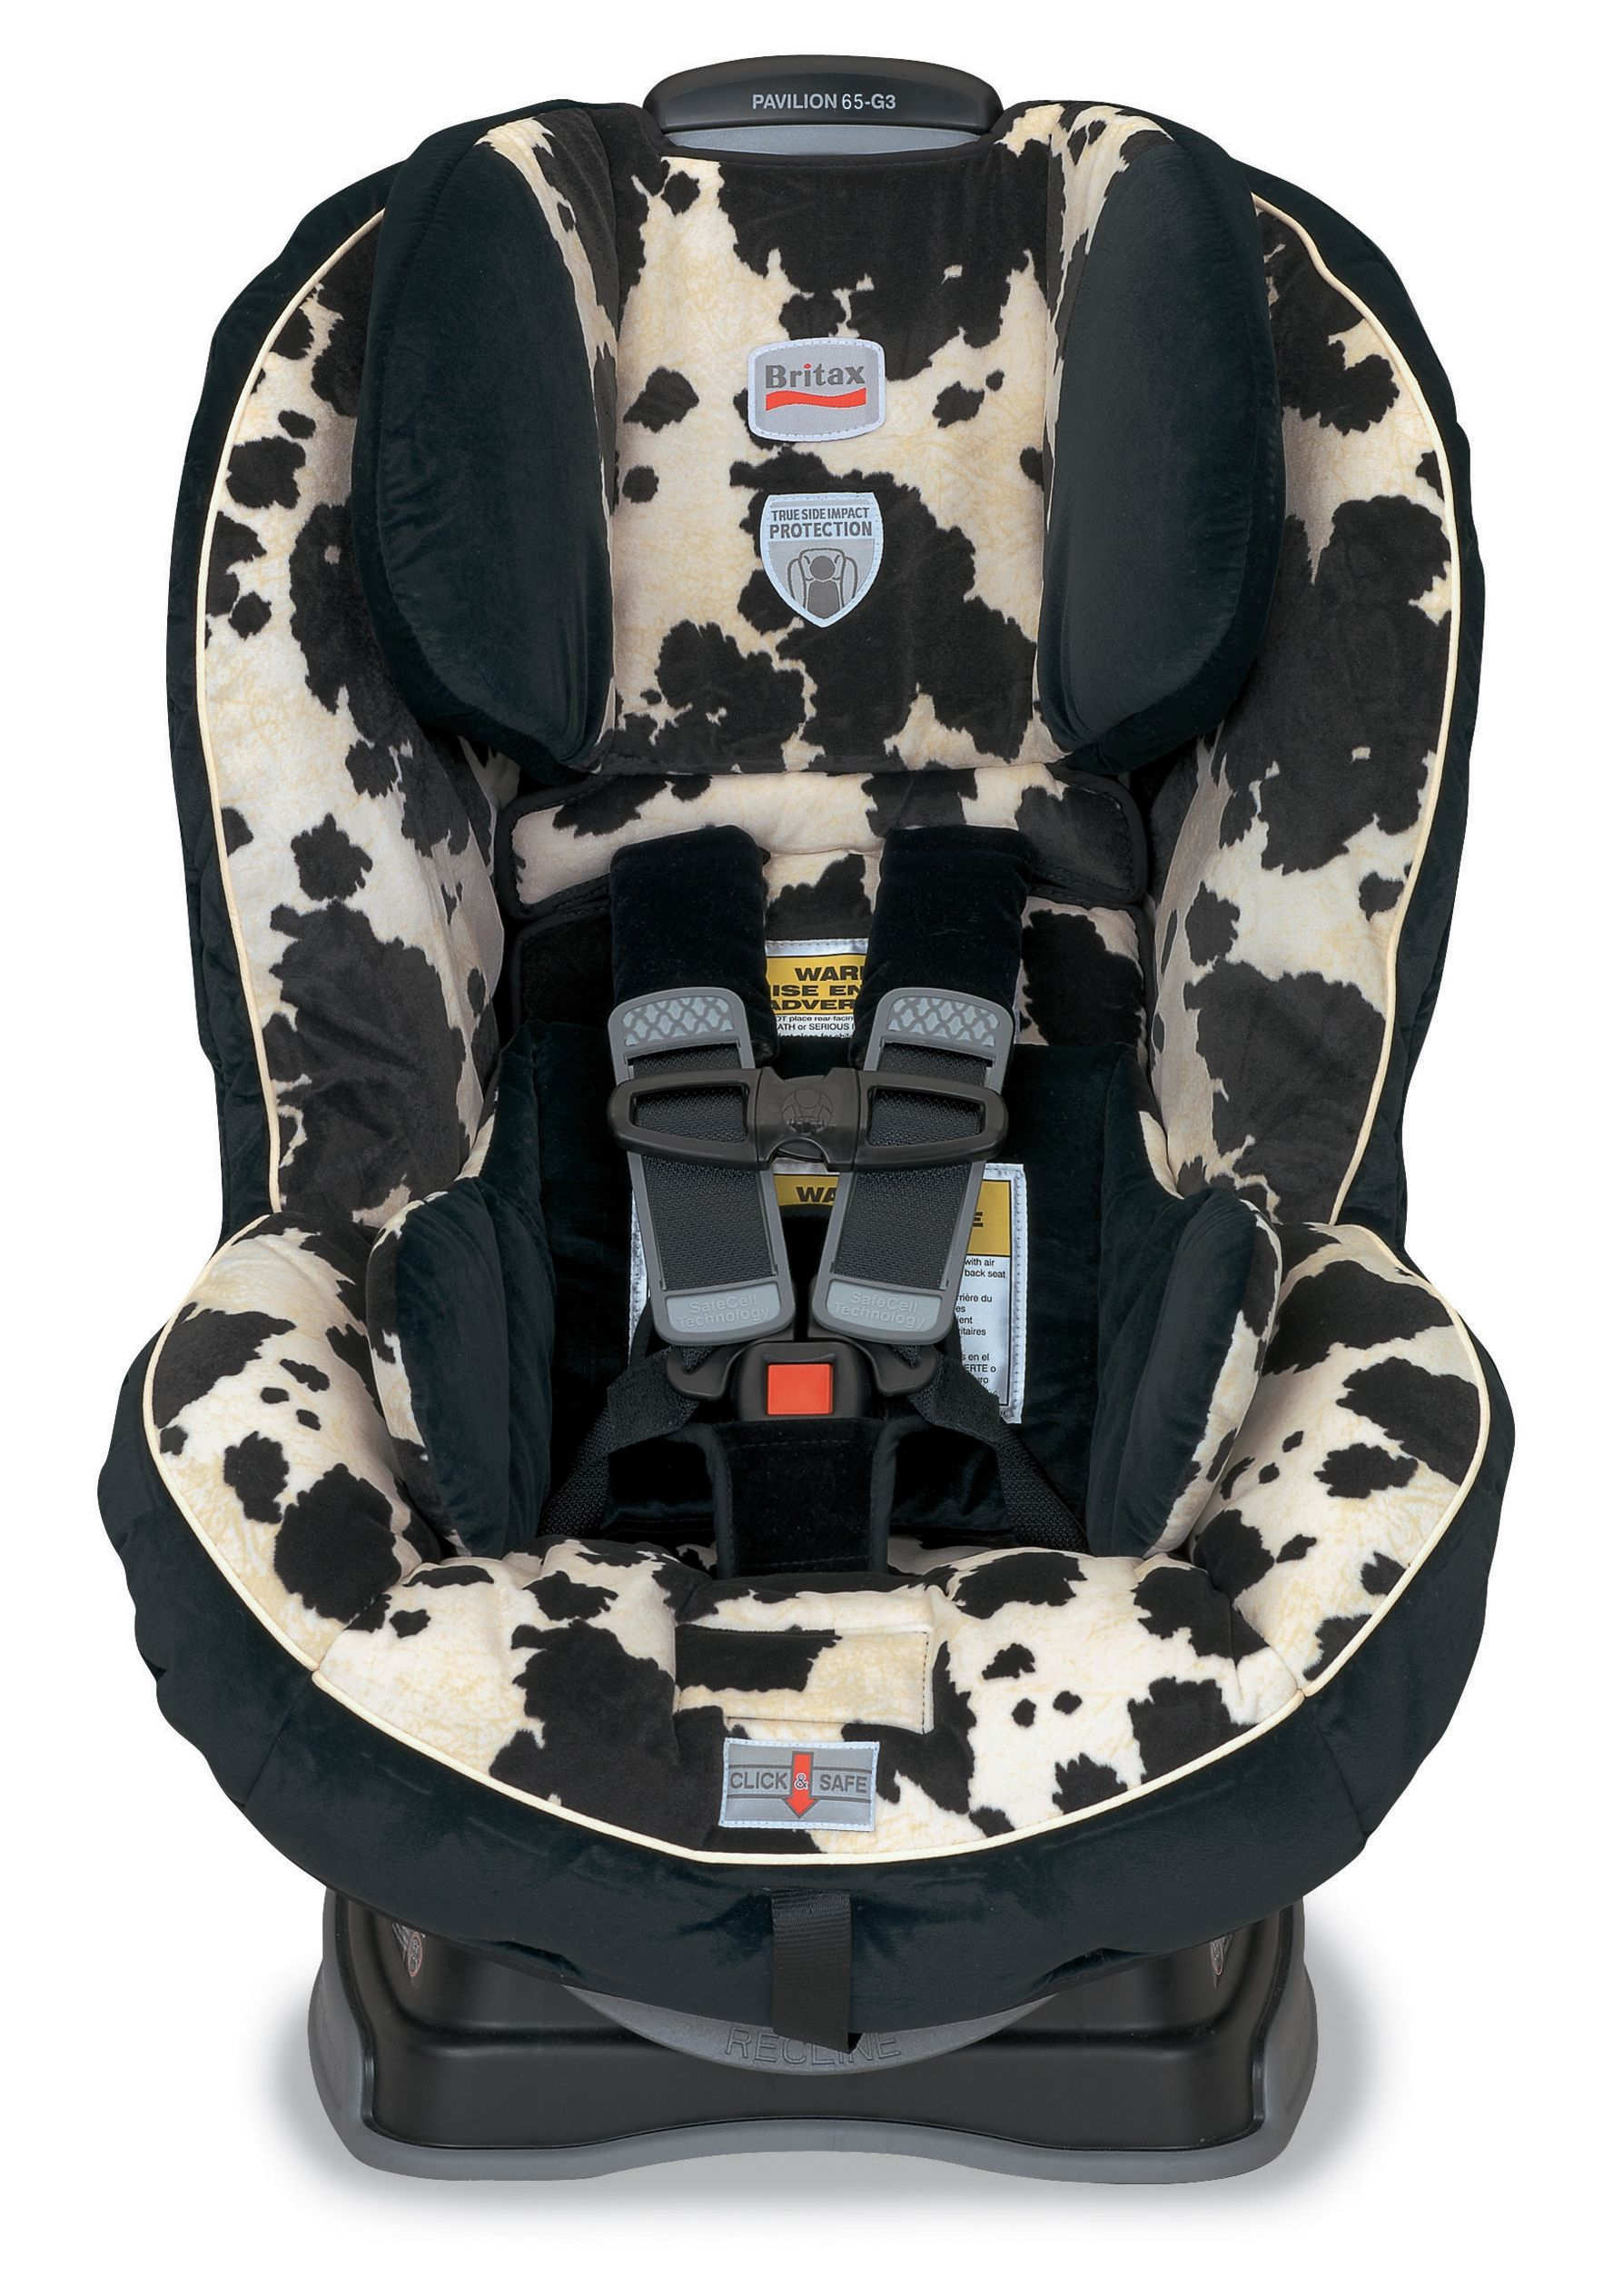 Britax pavilion 70 convertible car seat cowmooflage hugs chest pads with safecell technology are affixed to the seat shell to ensure proper positioning